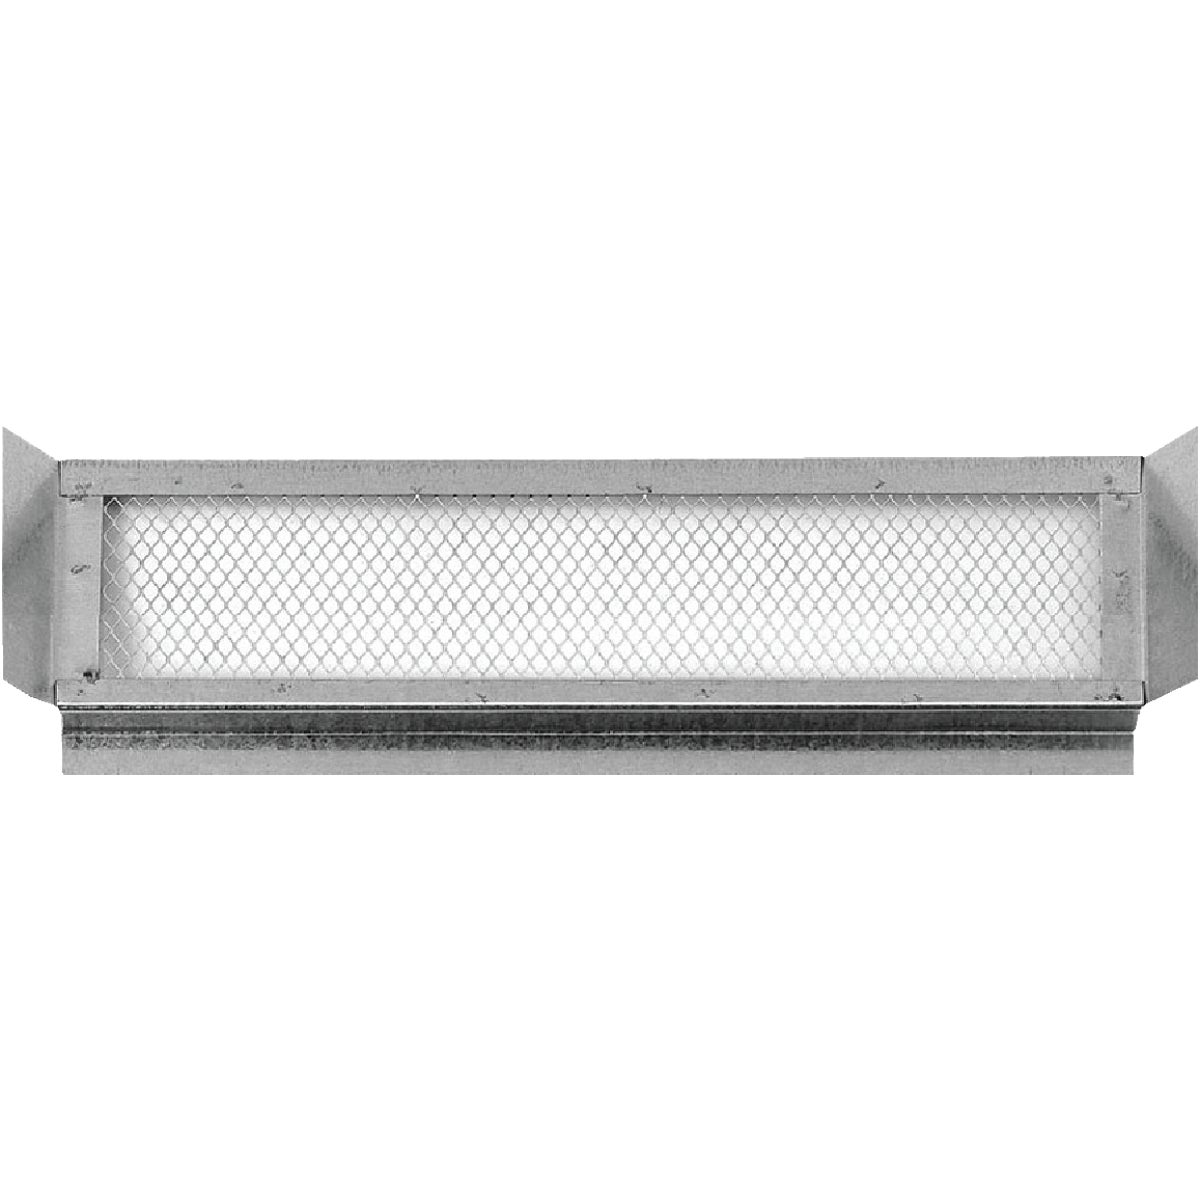 5-1/2X22 GALV EAVE VENT